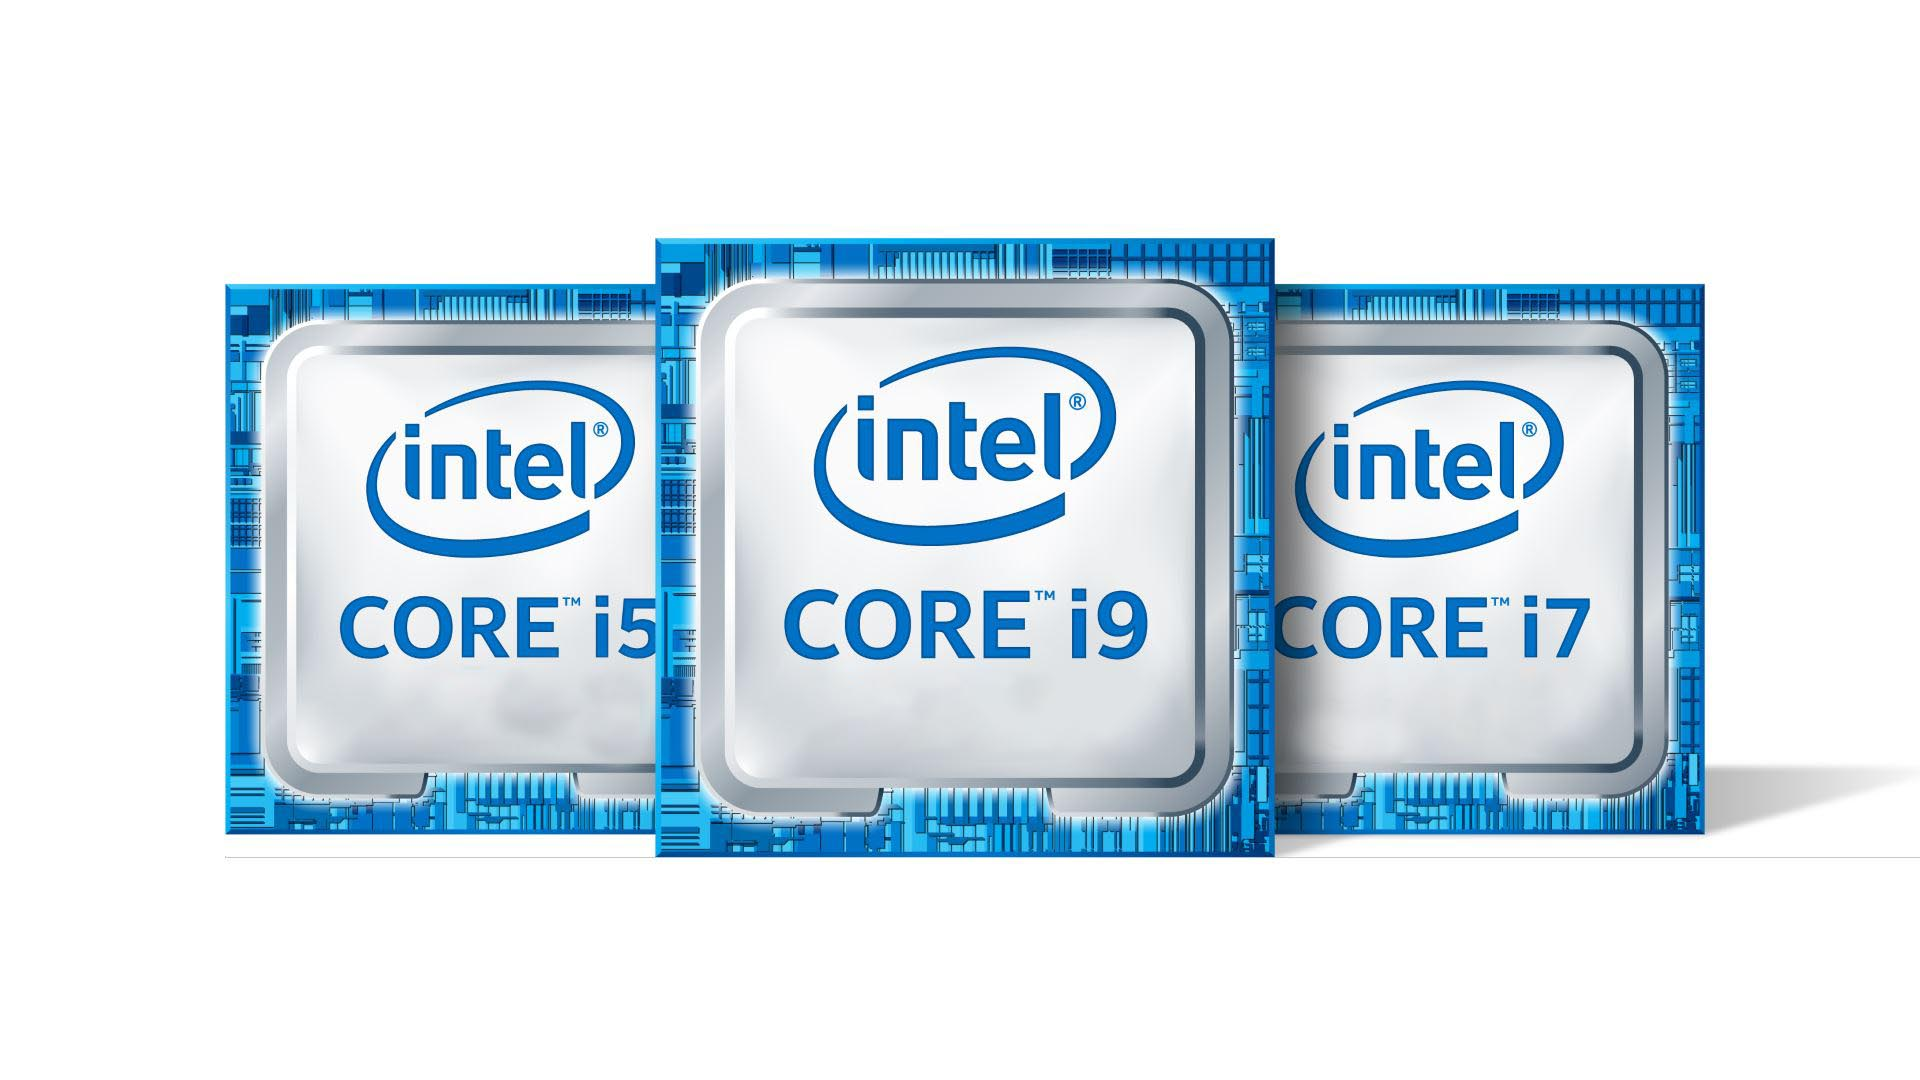 Intel Comet Lake release date leaks, 10-core CPU performance